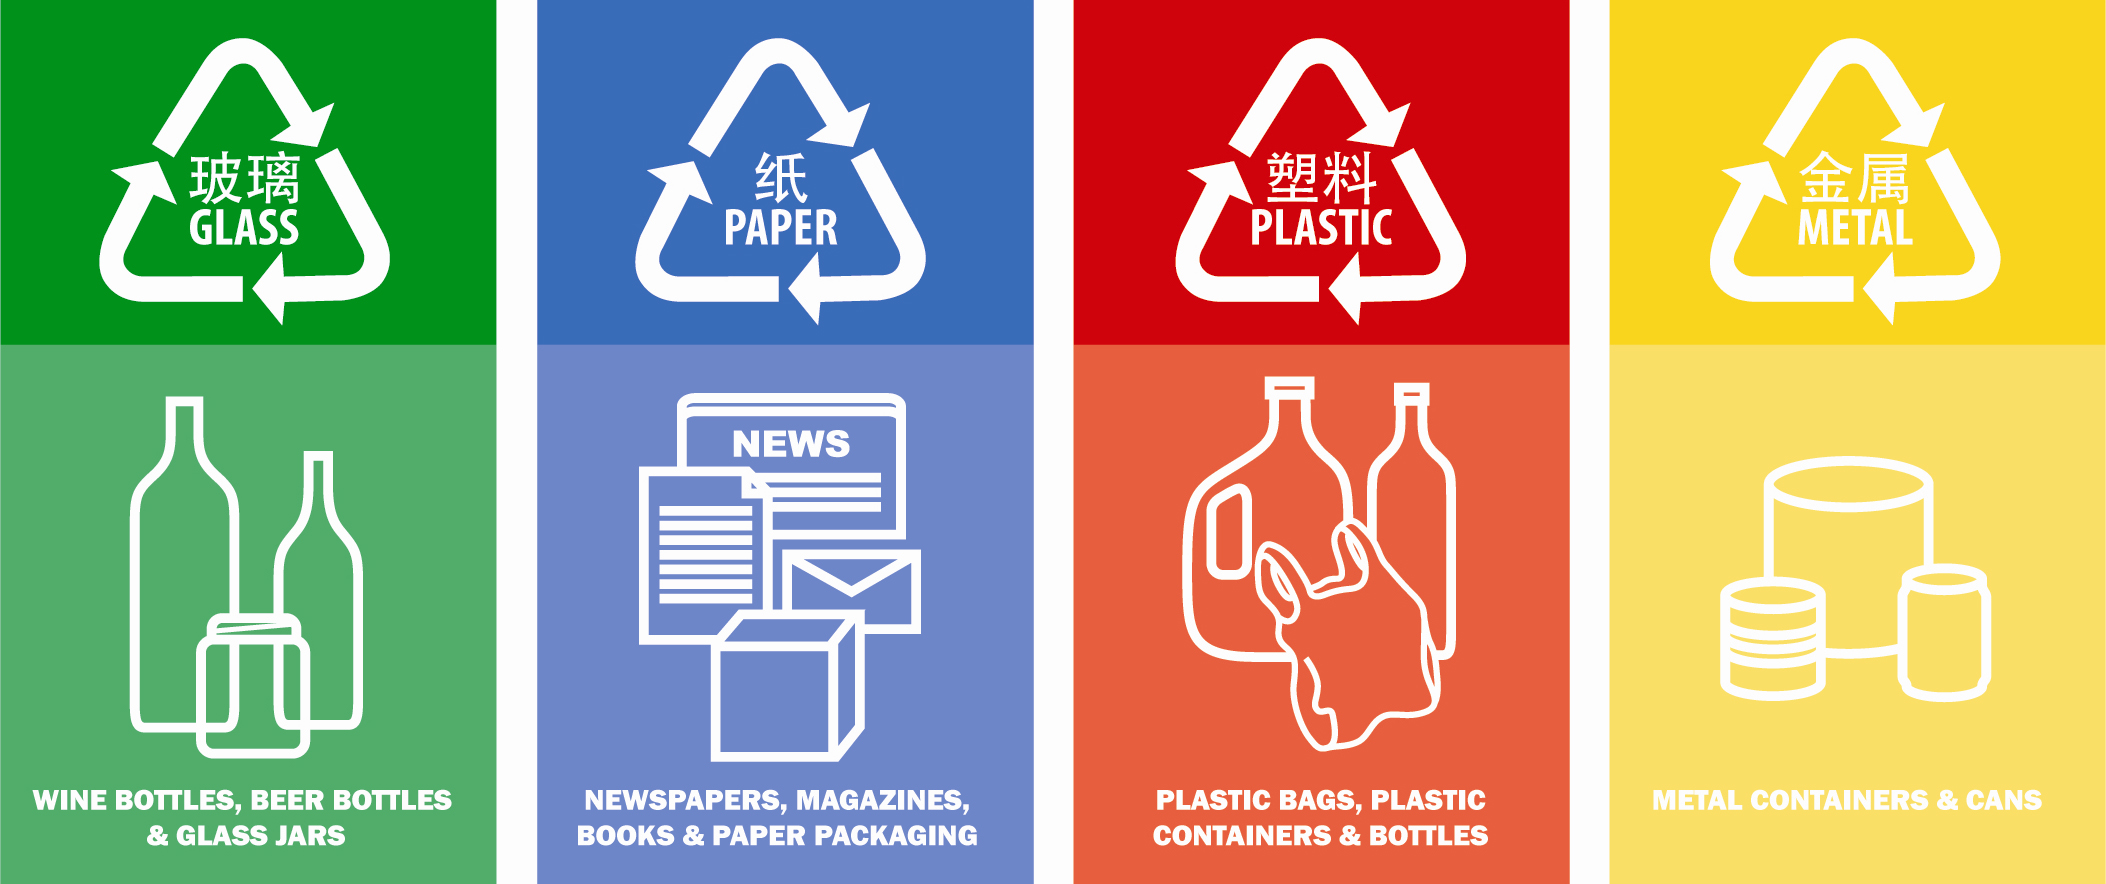 how does recycling help the environment 10 facts you should know